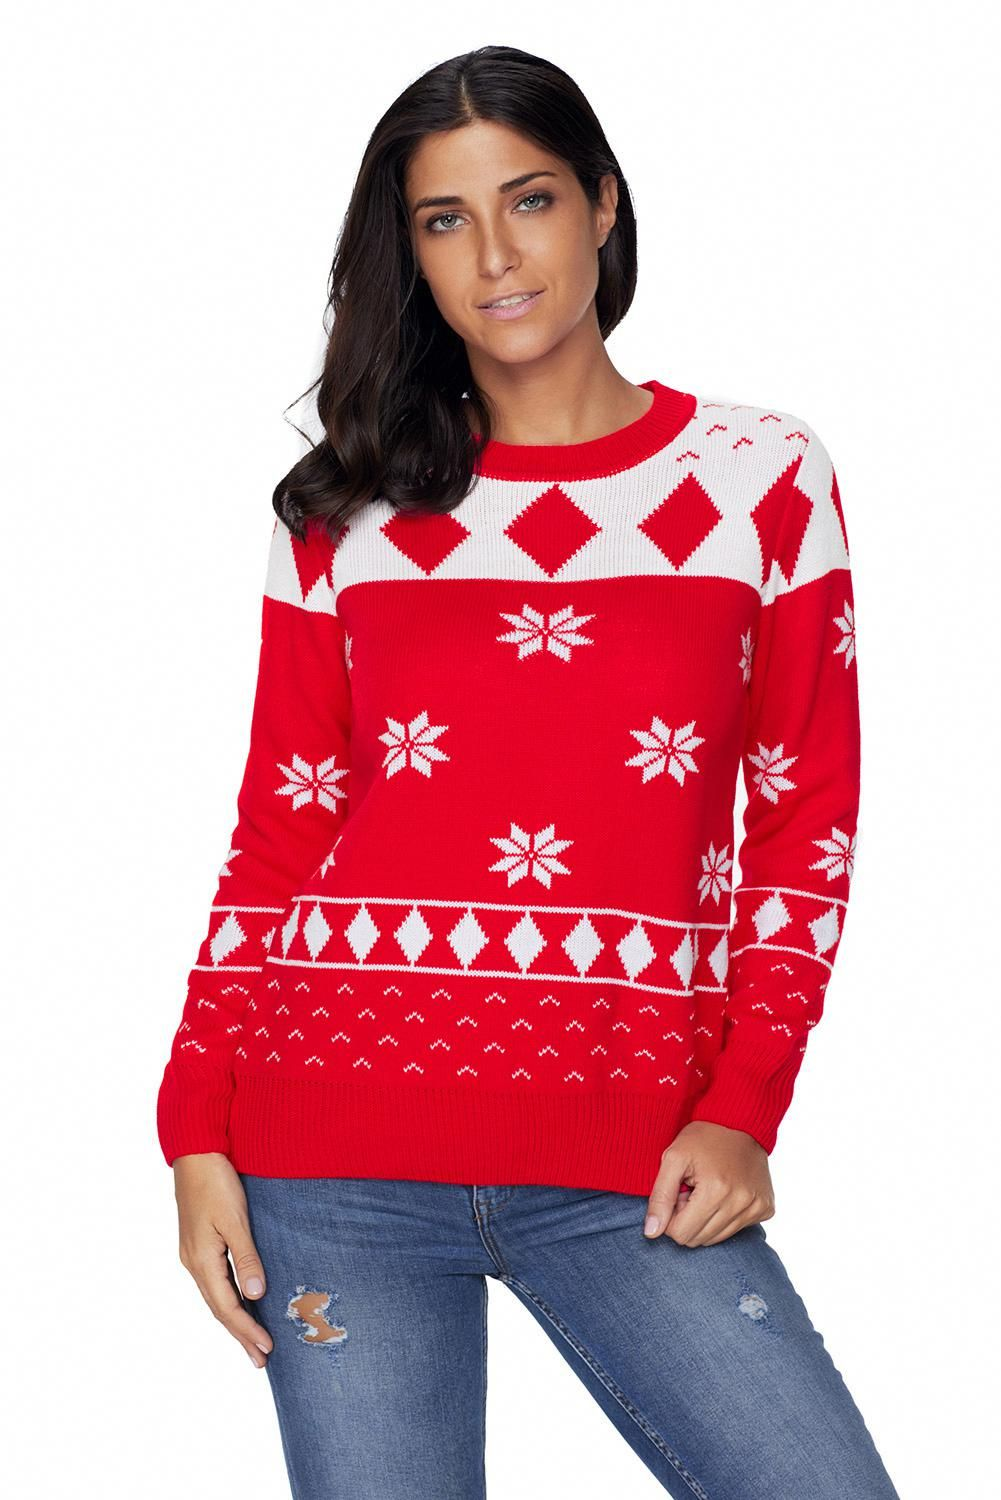 Red 3D Christmas Sweater [LC277873] 6.90 dailyshee